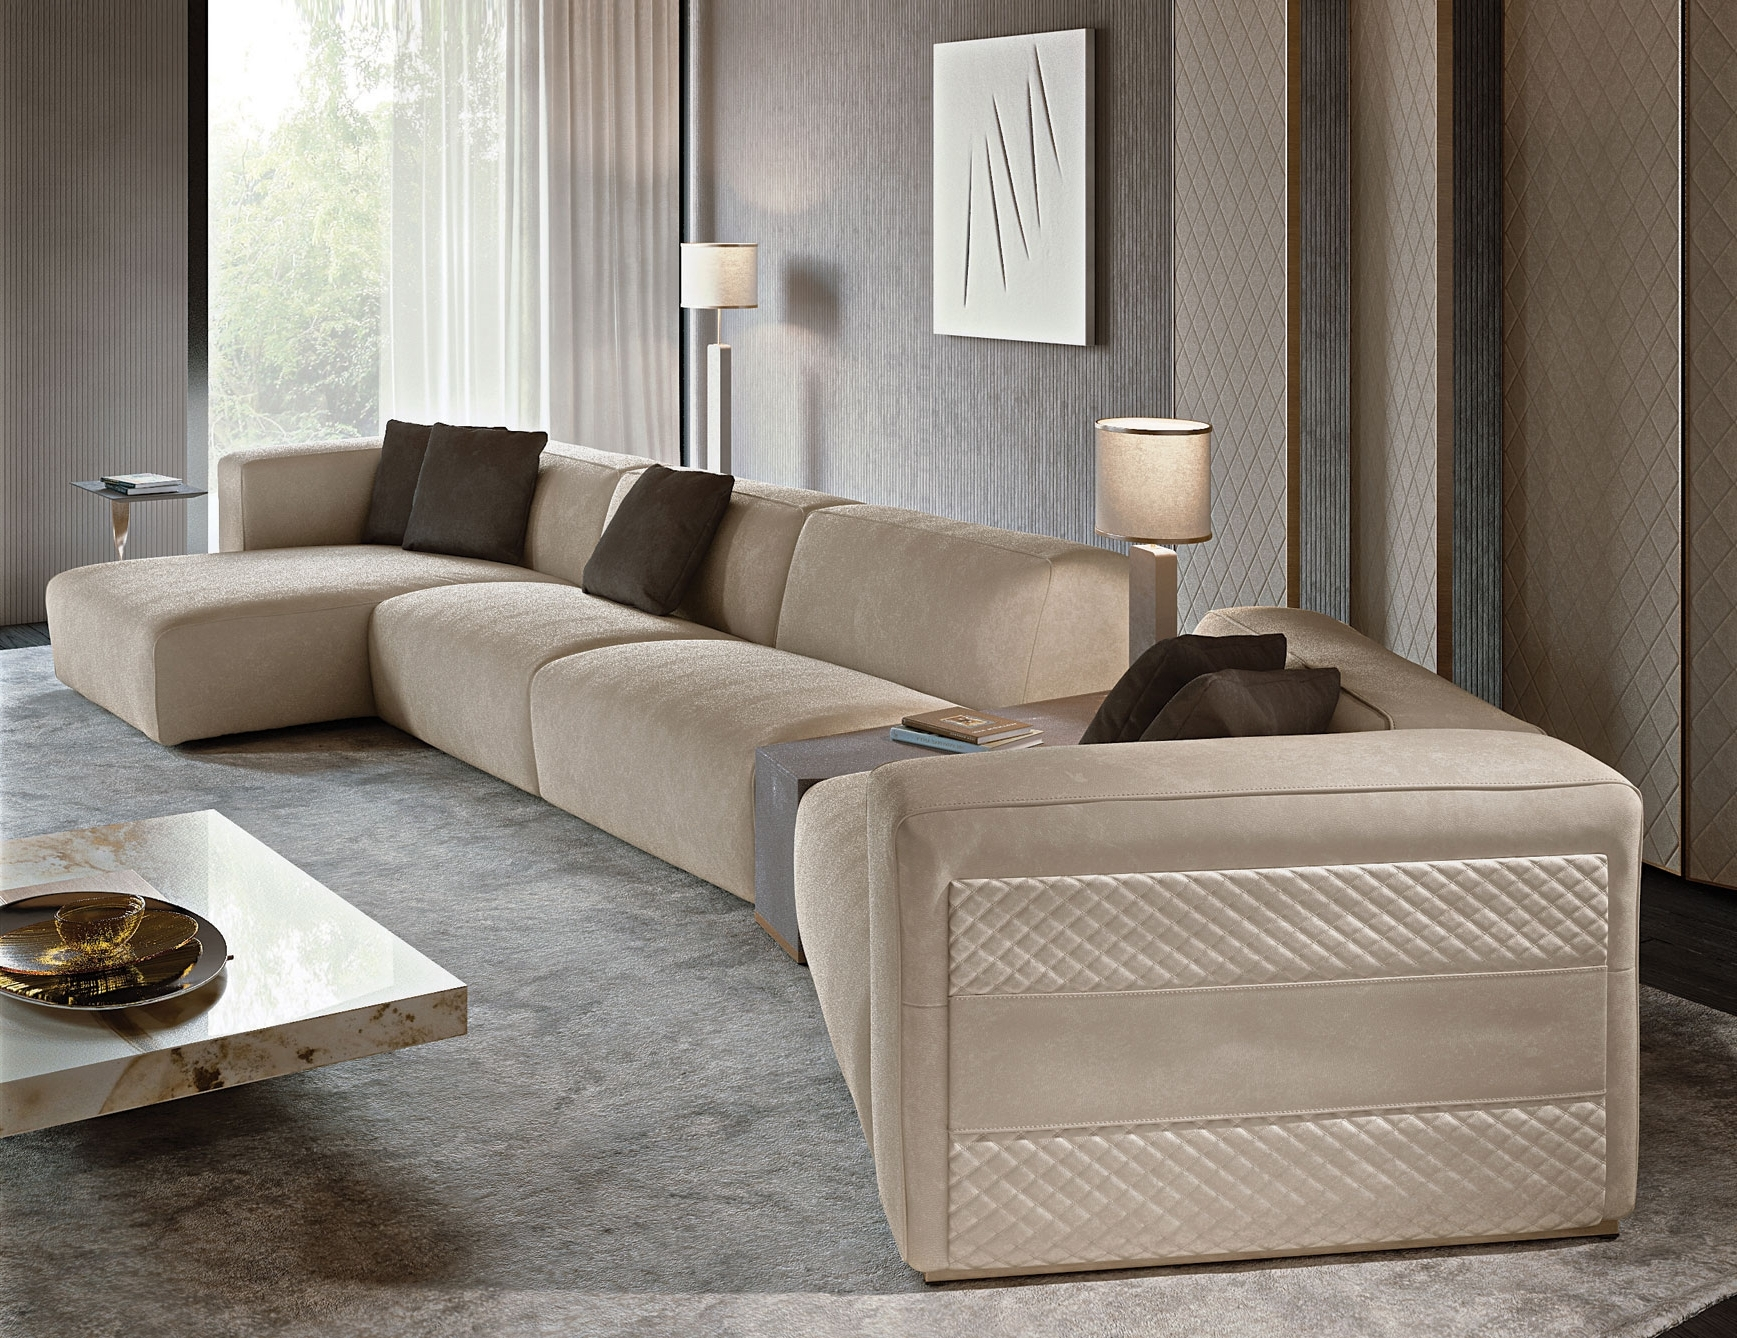 Most Recent High End Sofas Intended For Nella Vetrina Rugiano Freud Sectional Sofa In Suede (View 6 of 20)